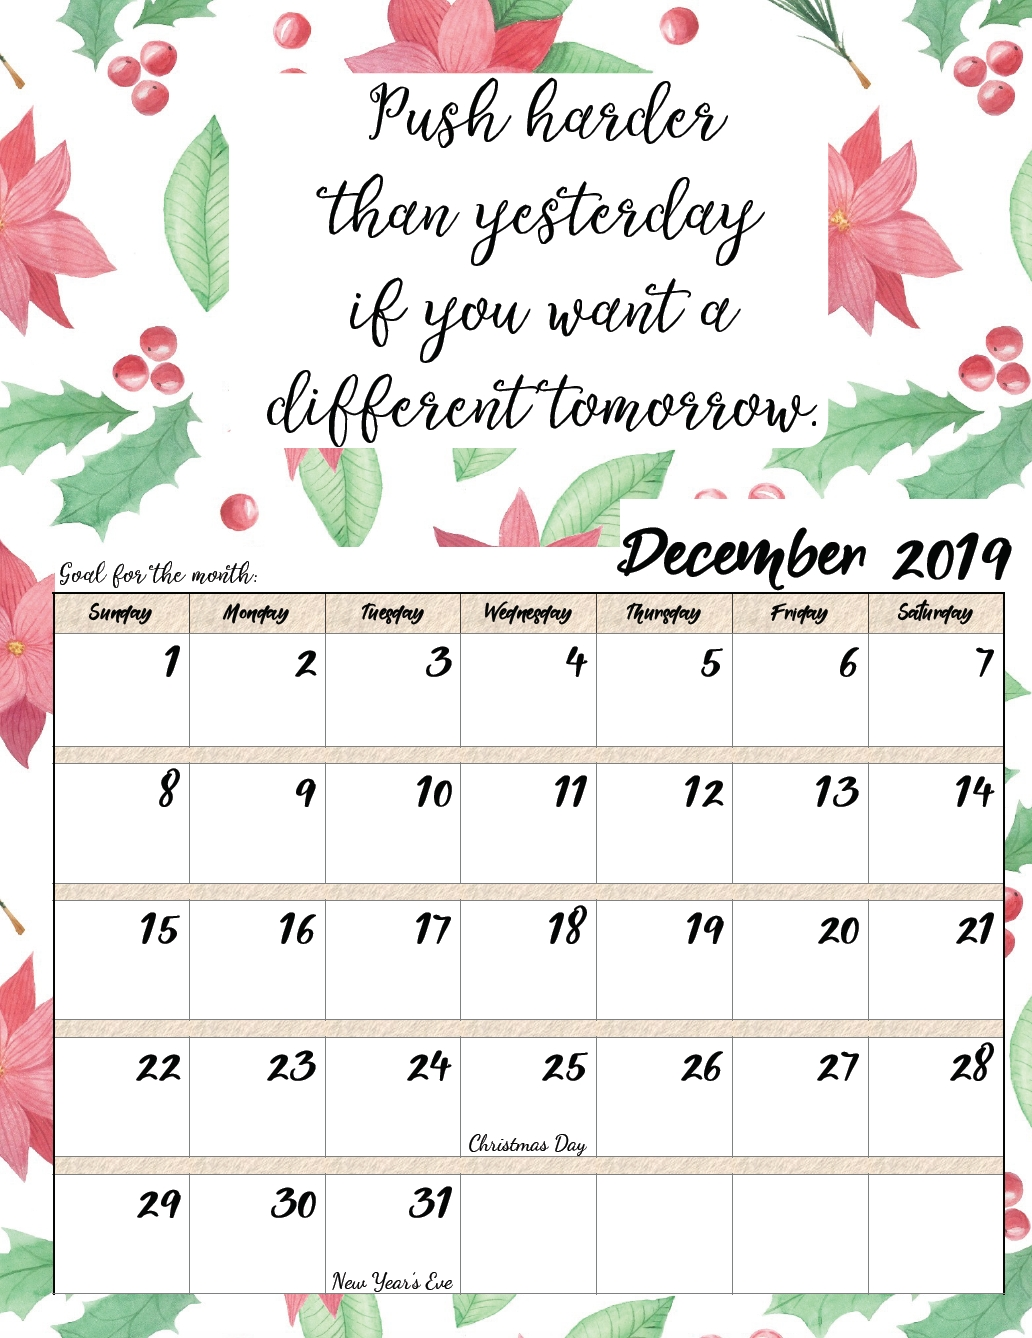 Free Printable 2019 Monthly Motivational Calendars | Morning Prayers intended for Free Printable Calendar 2020 Motivational